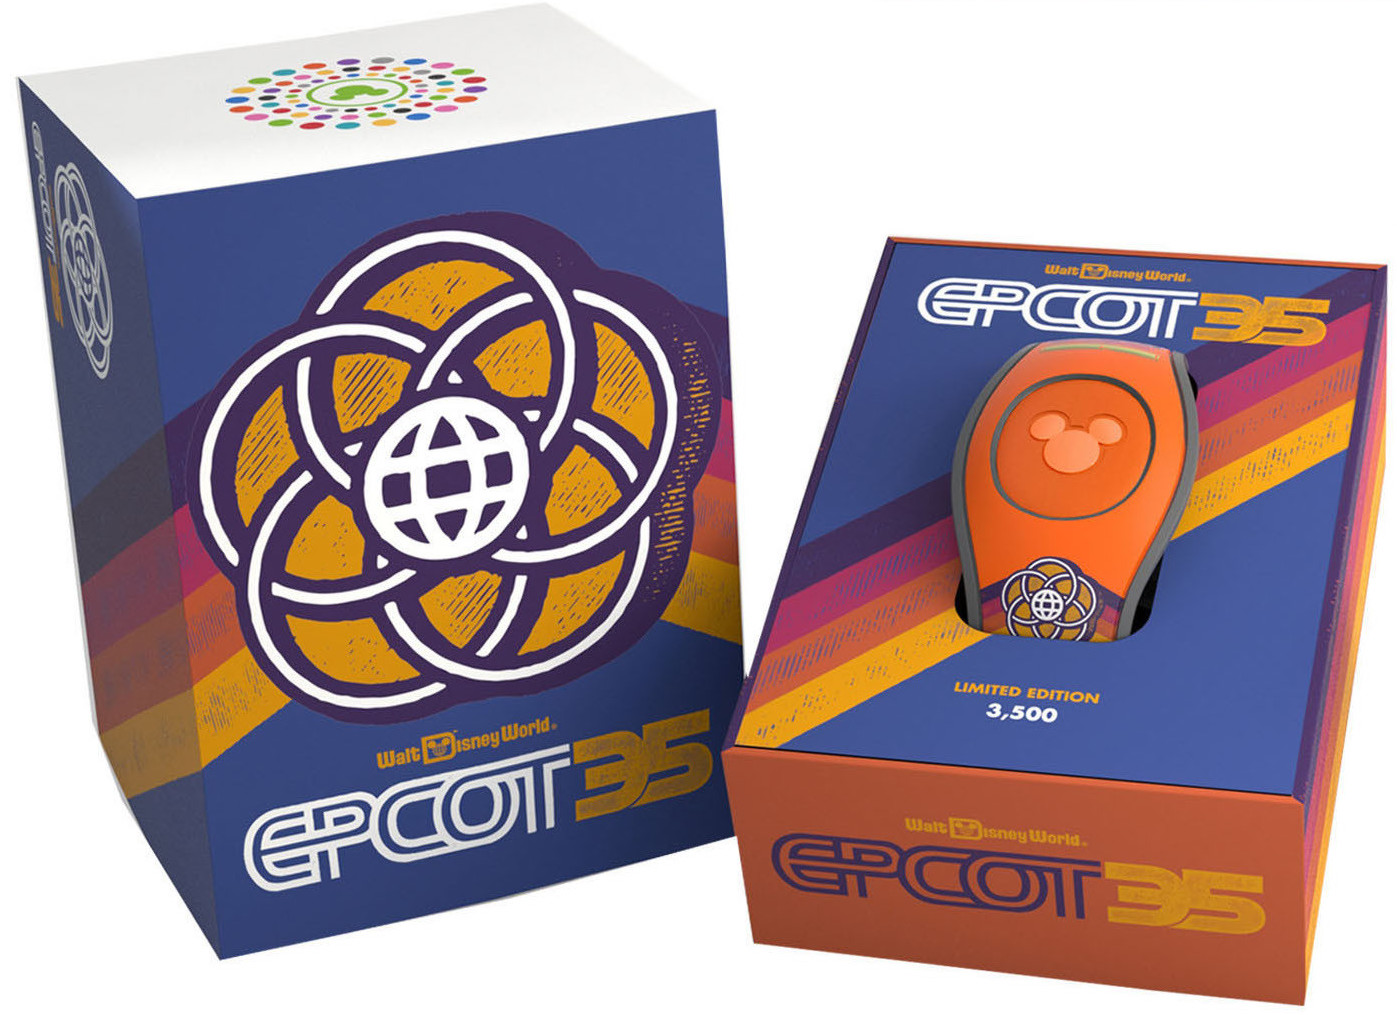 Epcot th anniversary limited edition magicband coming october